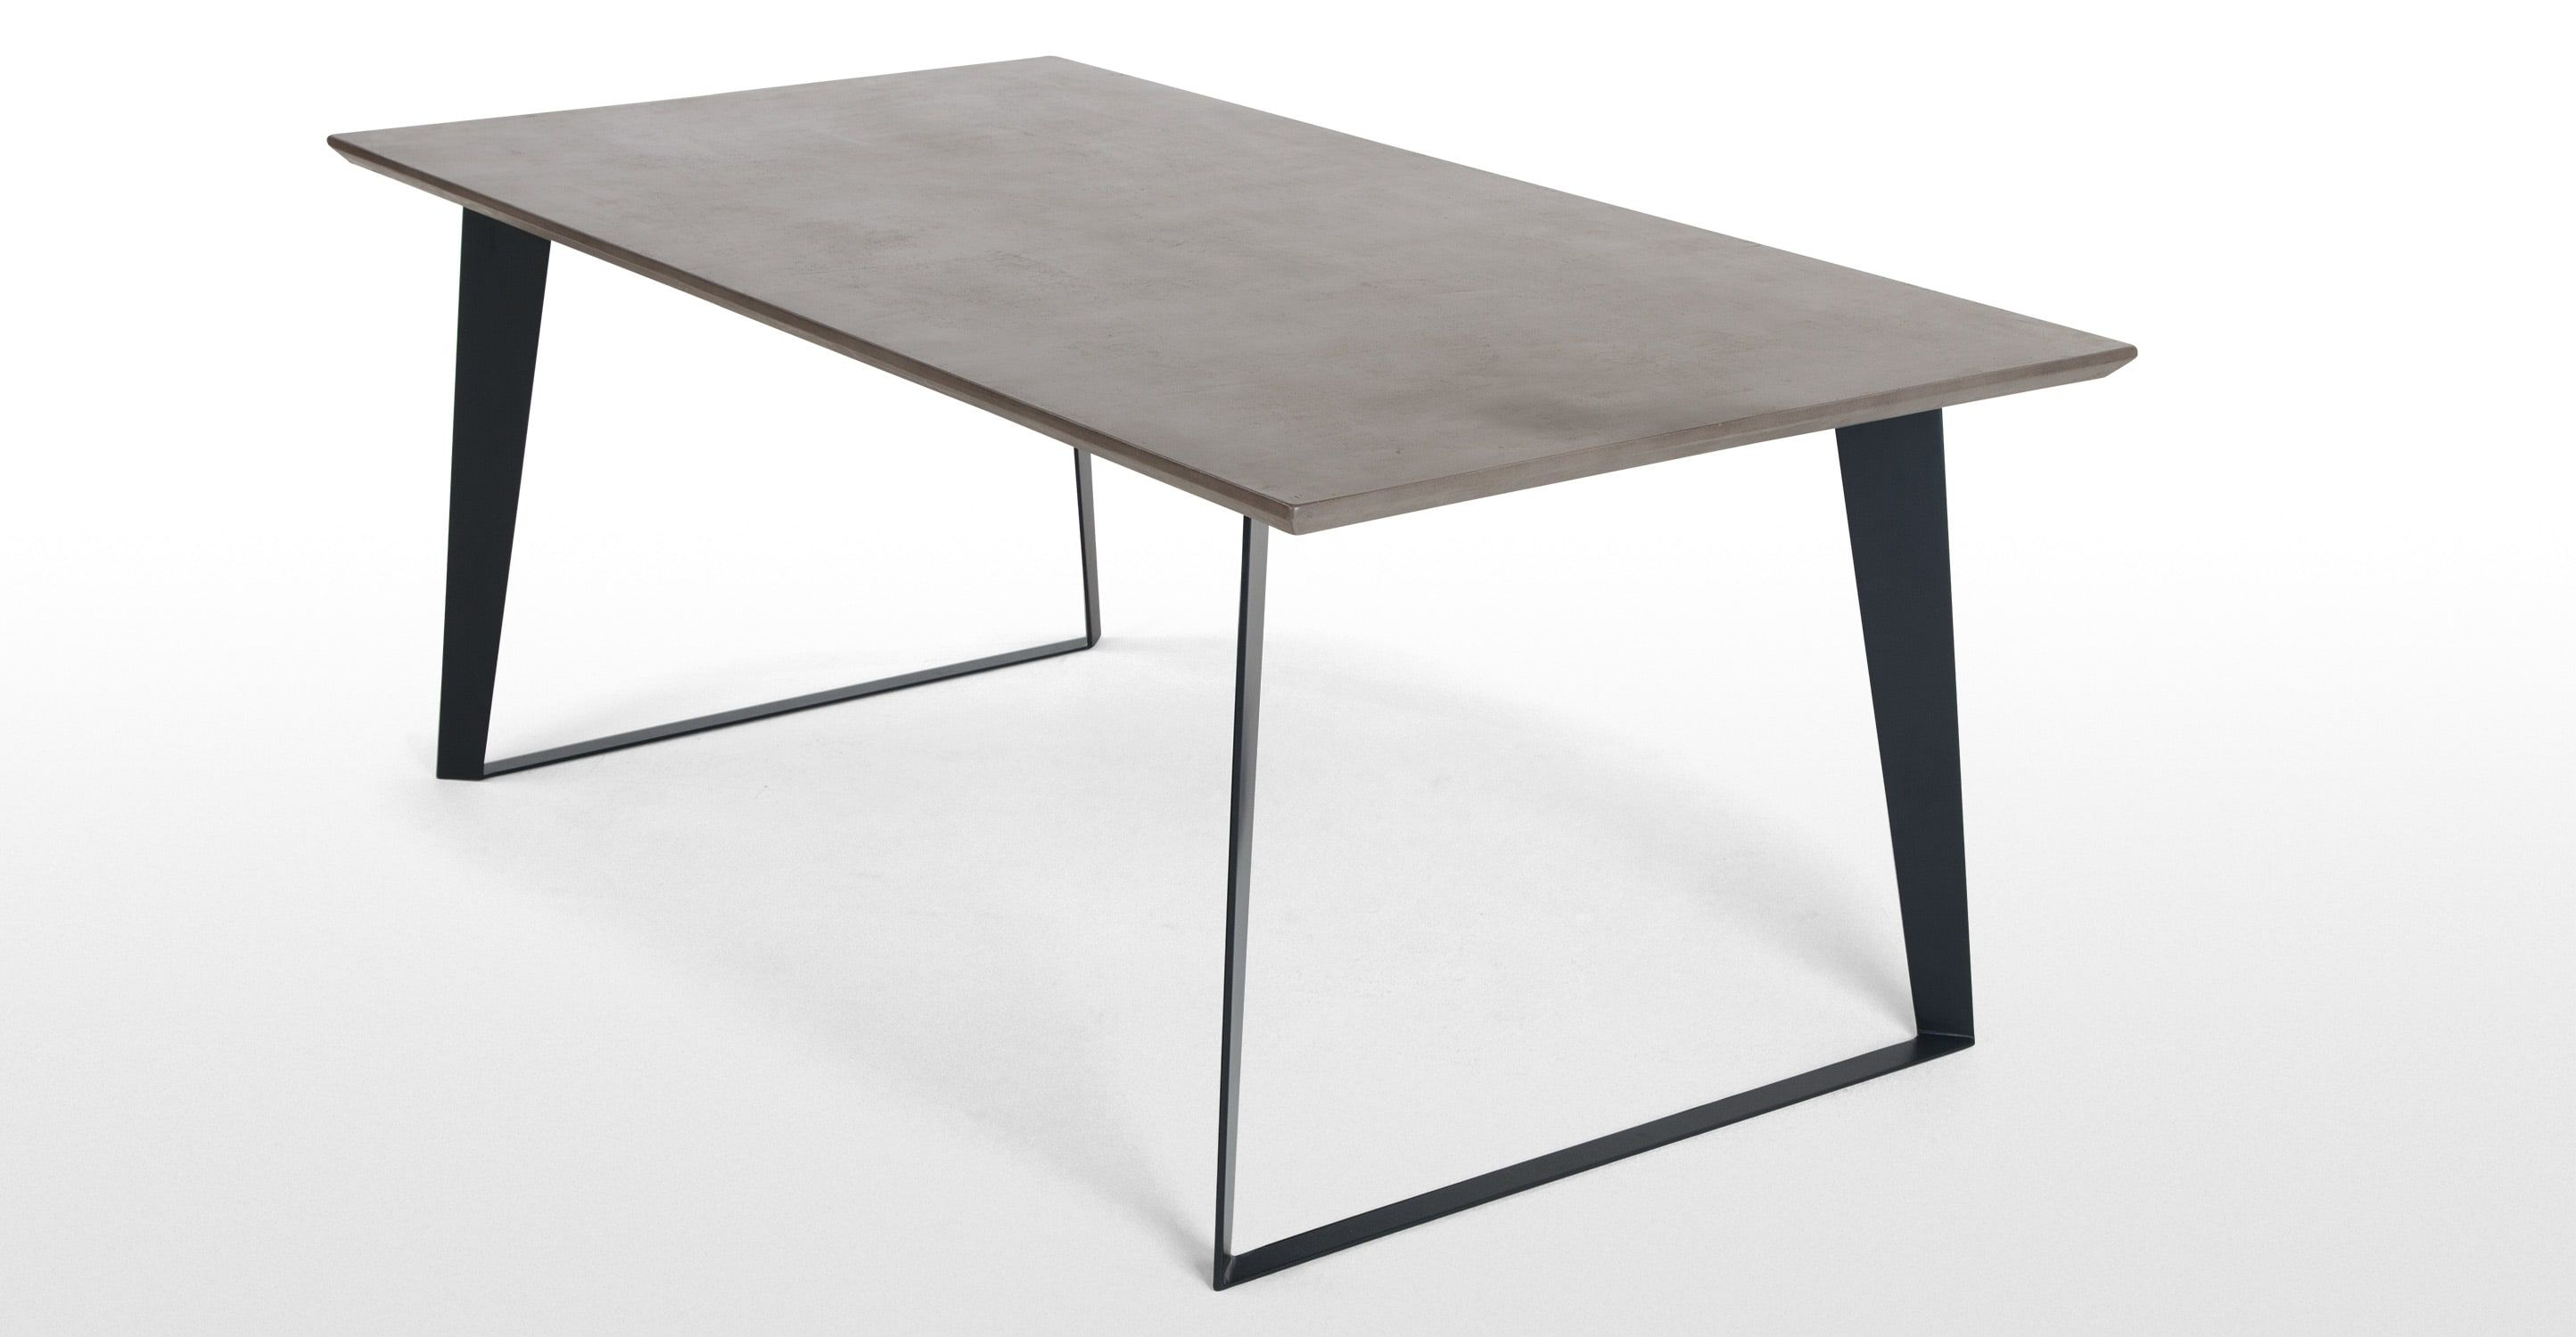 Tavolo bramante ~ Boone esstisch betongrau concrete tables and interiors